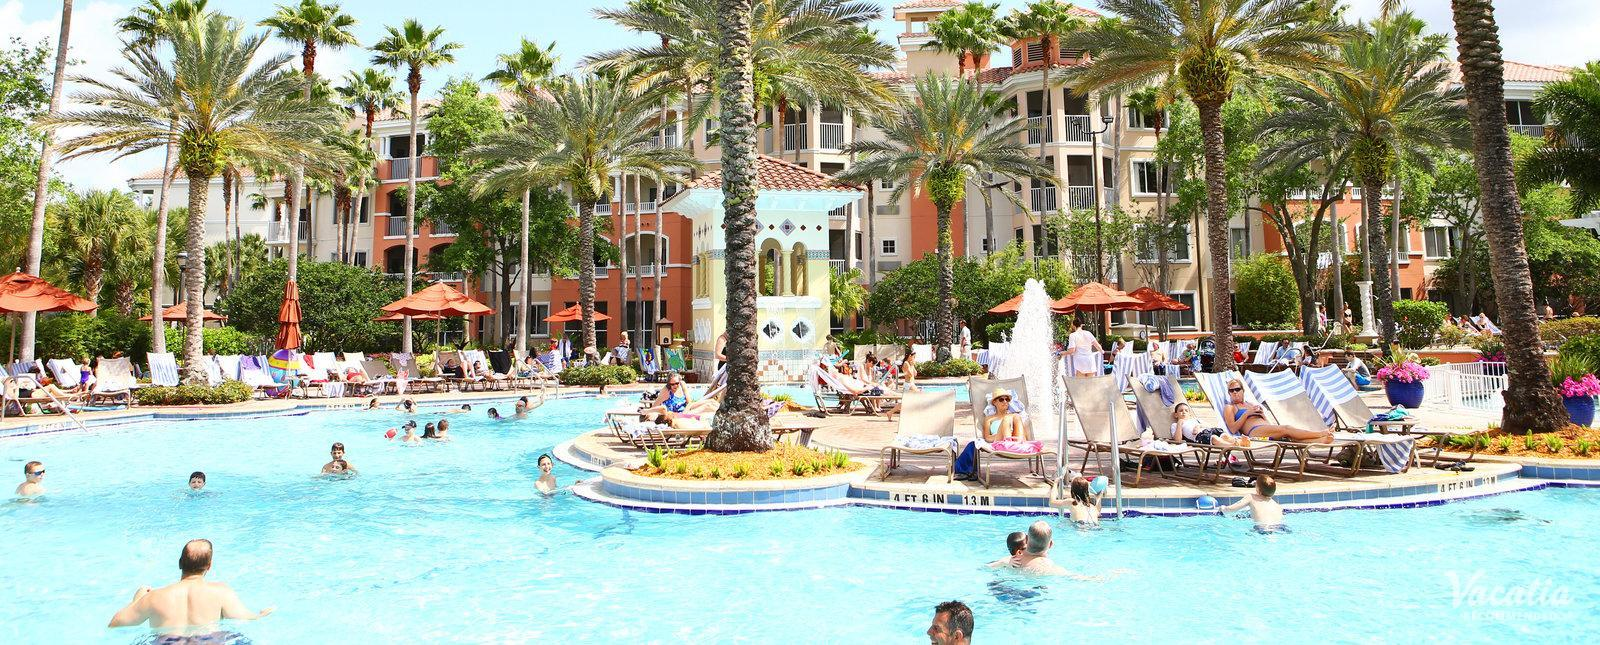 Marriott Grande Vista Orlando Resort Map Marriott's Grande Vista: Reviews, Pictures & Floor Plans | Vacatia